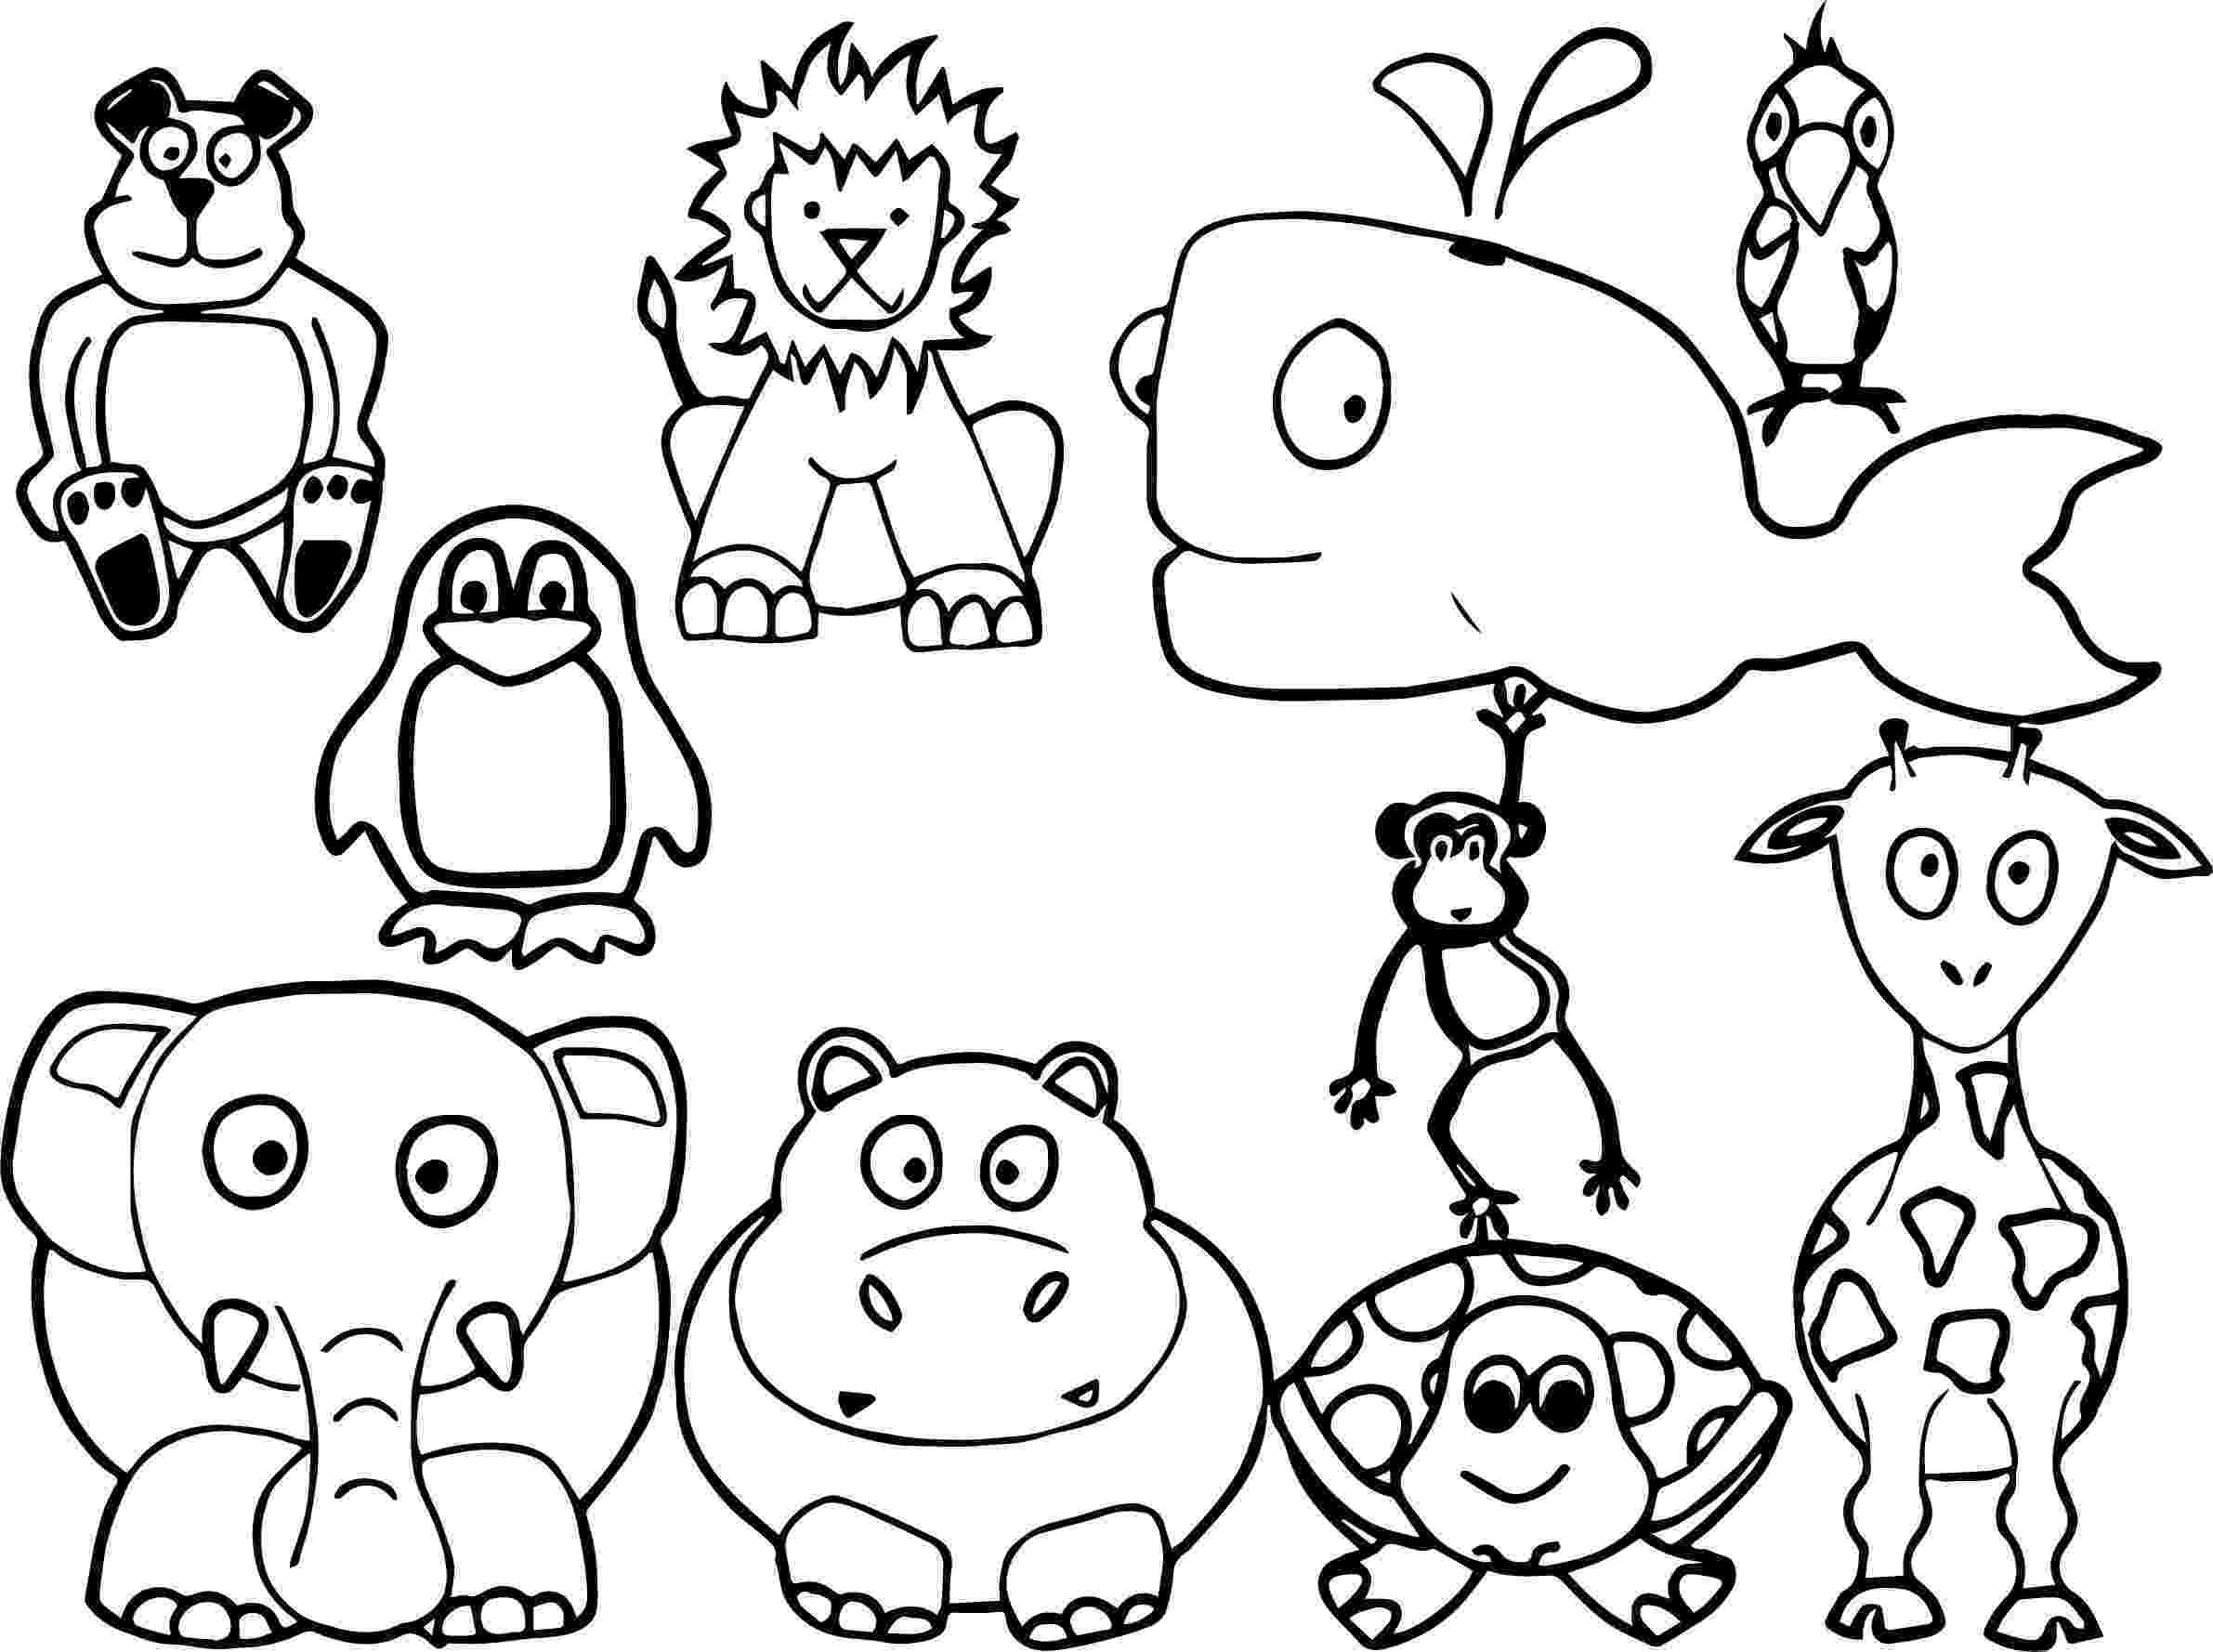 animal coloring pages printable zebra coloring page coloring pages for free 2015 coloring pages printable animal